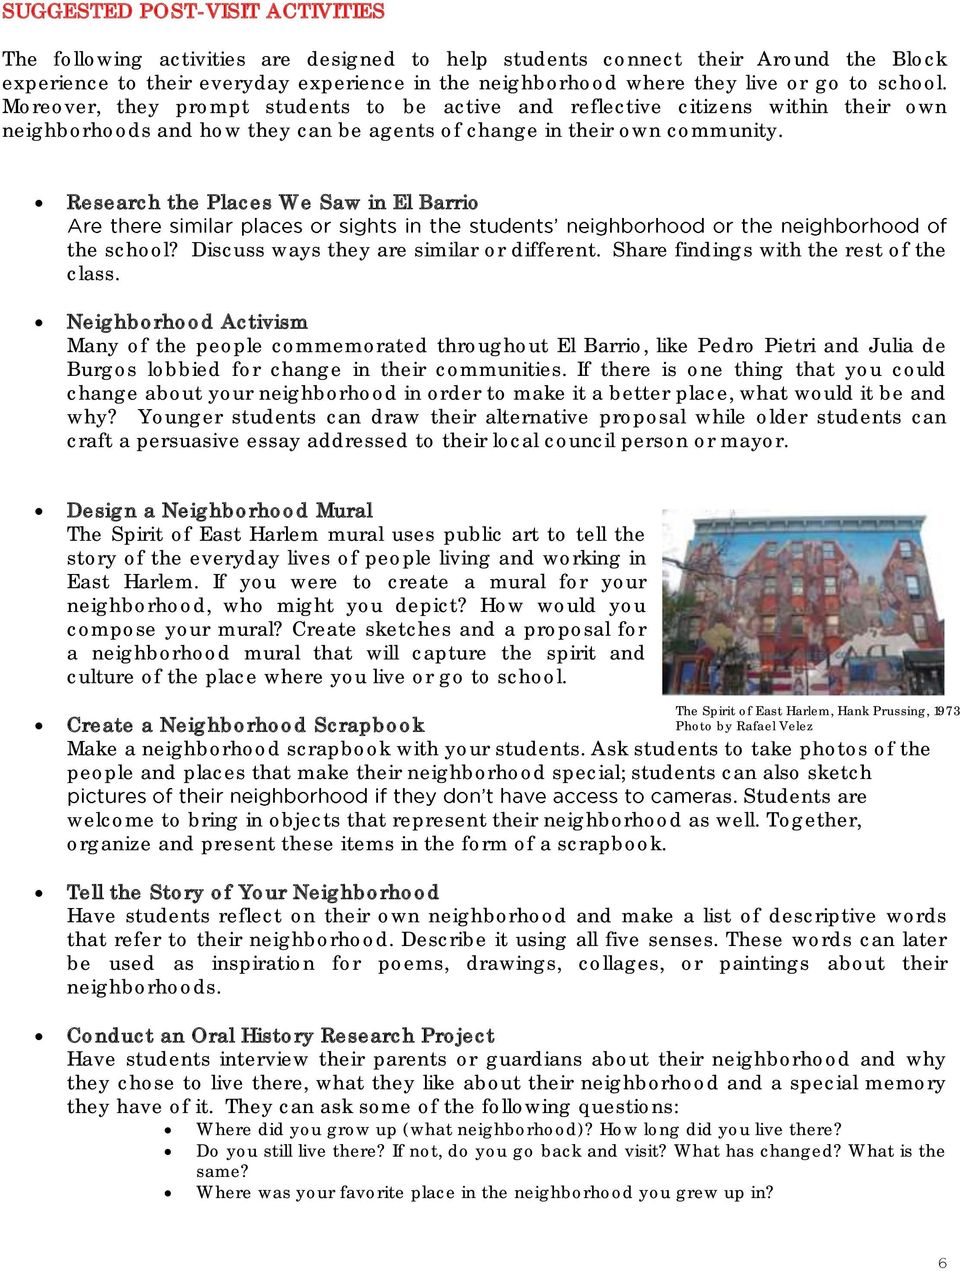 Research the Places We Saw in El Barrio the school? Discuss ways they are similar or different. Share findings with the rest of the class.